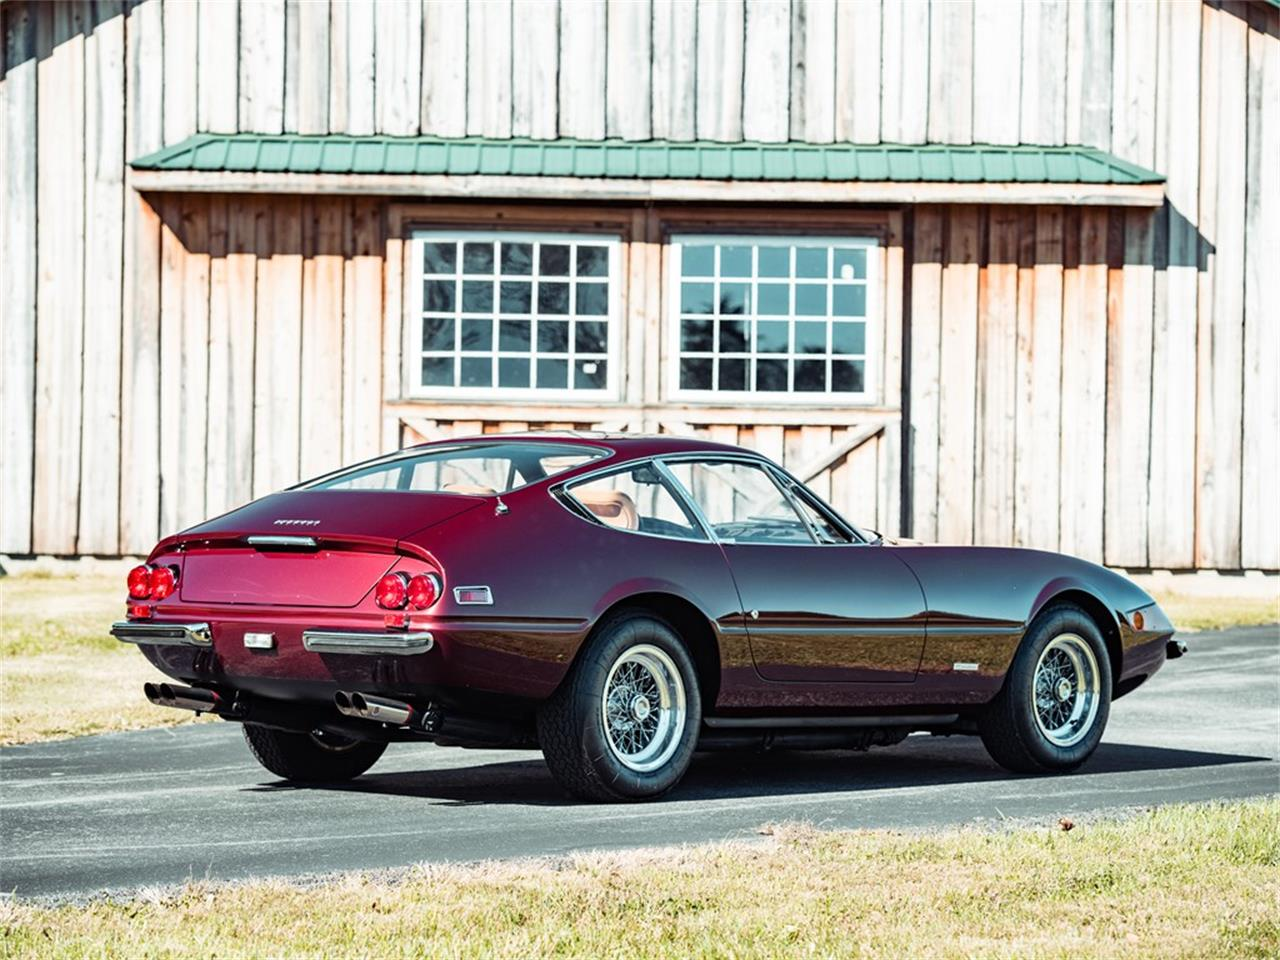 Large Picture of Classic '72 365 GTB/4 Daytona Berlinetta located in California - OW0C